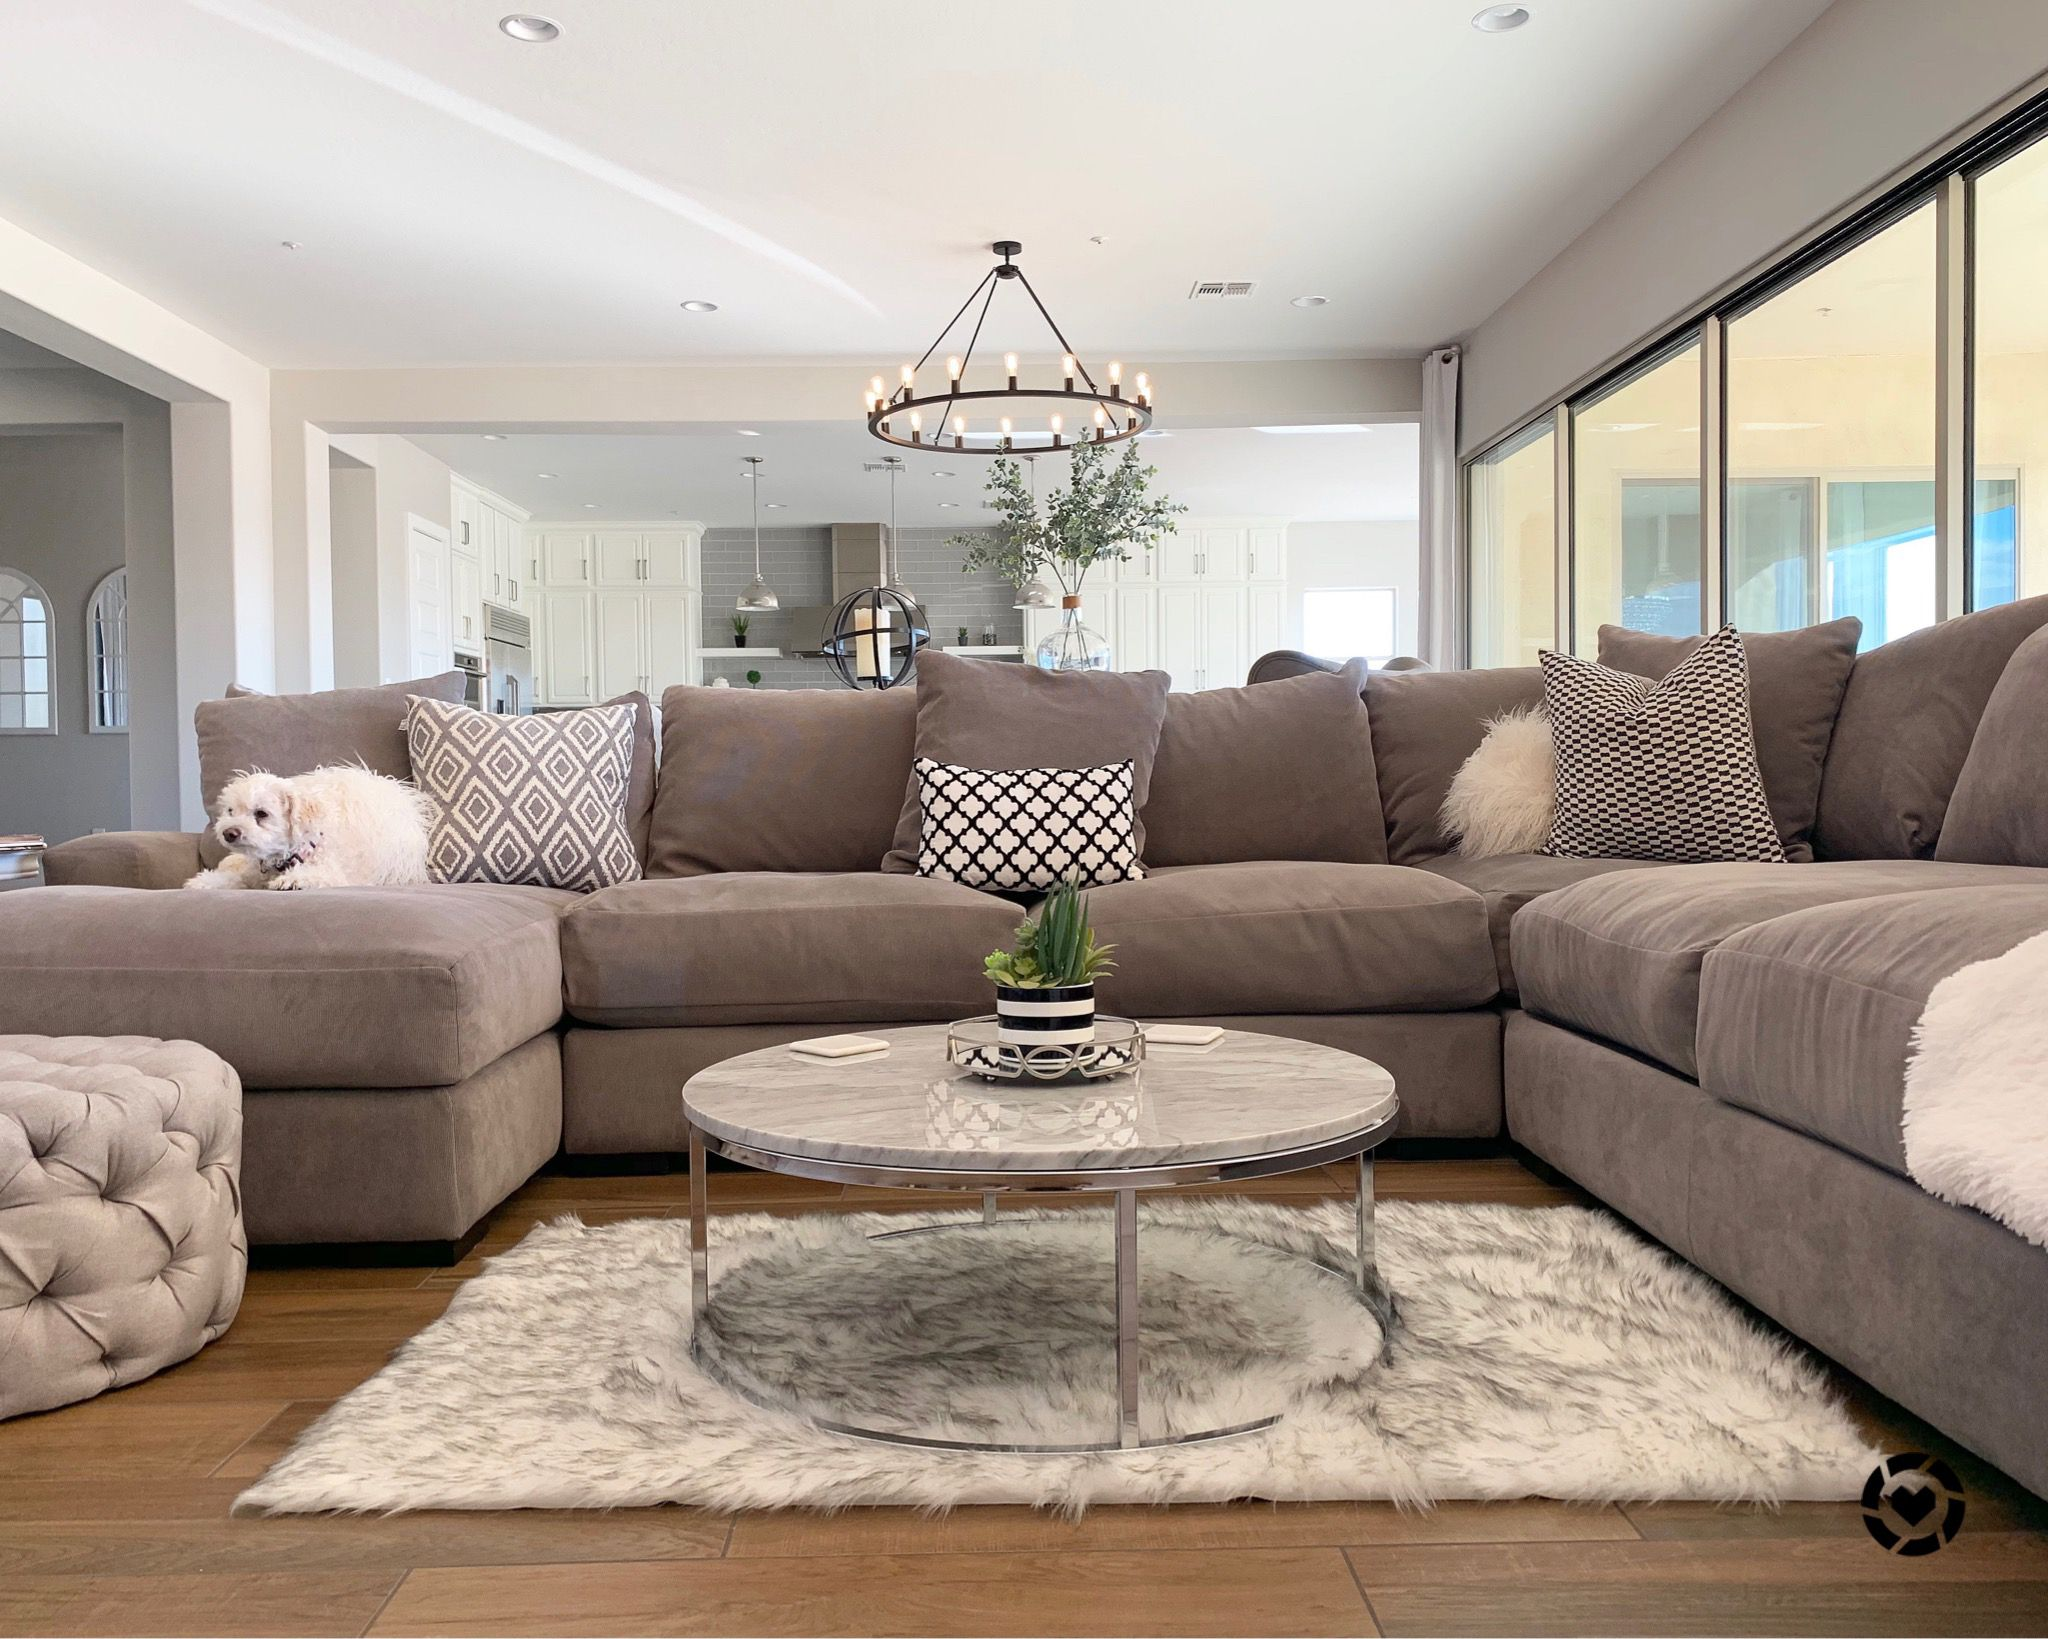 Our Sectional Is The Best Color Gray Fabric Is Soft Yet Durable And So Comfy I Found A Marble Living Room Remodel Neutral Bedrooms Stripe Wallpaper Bedroom